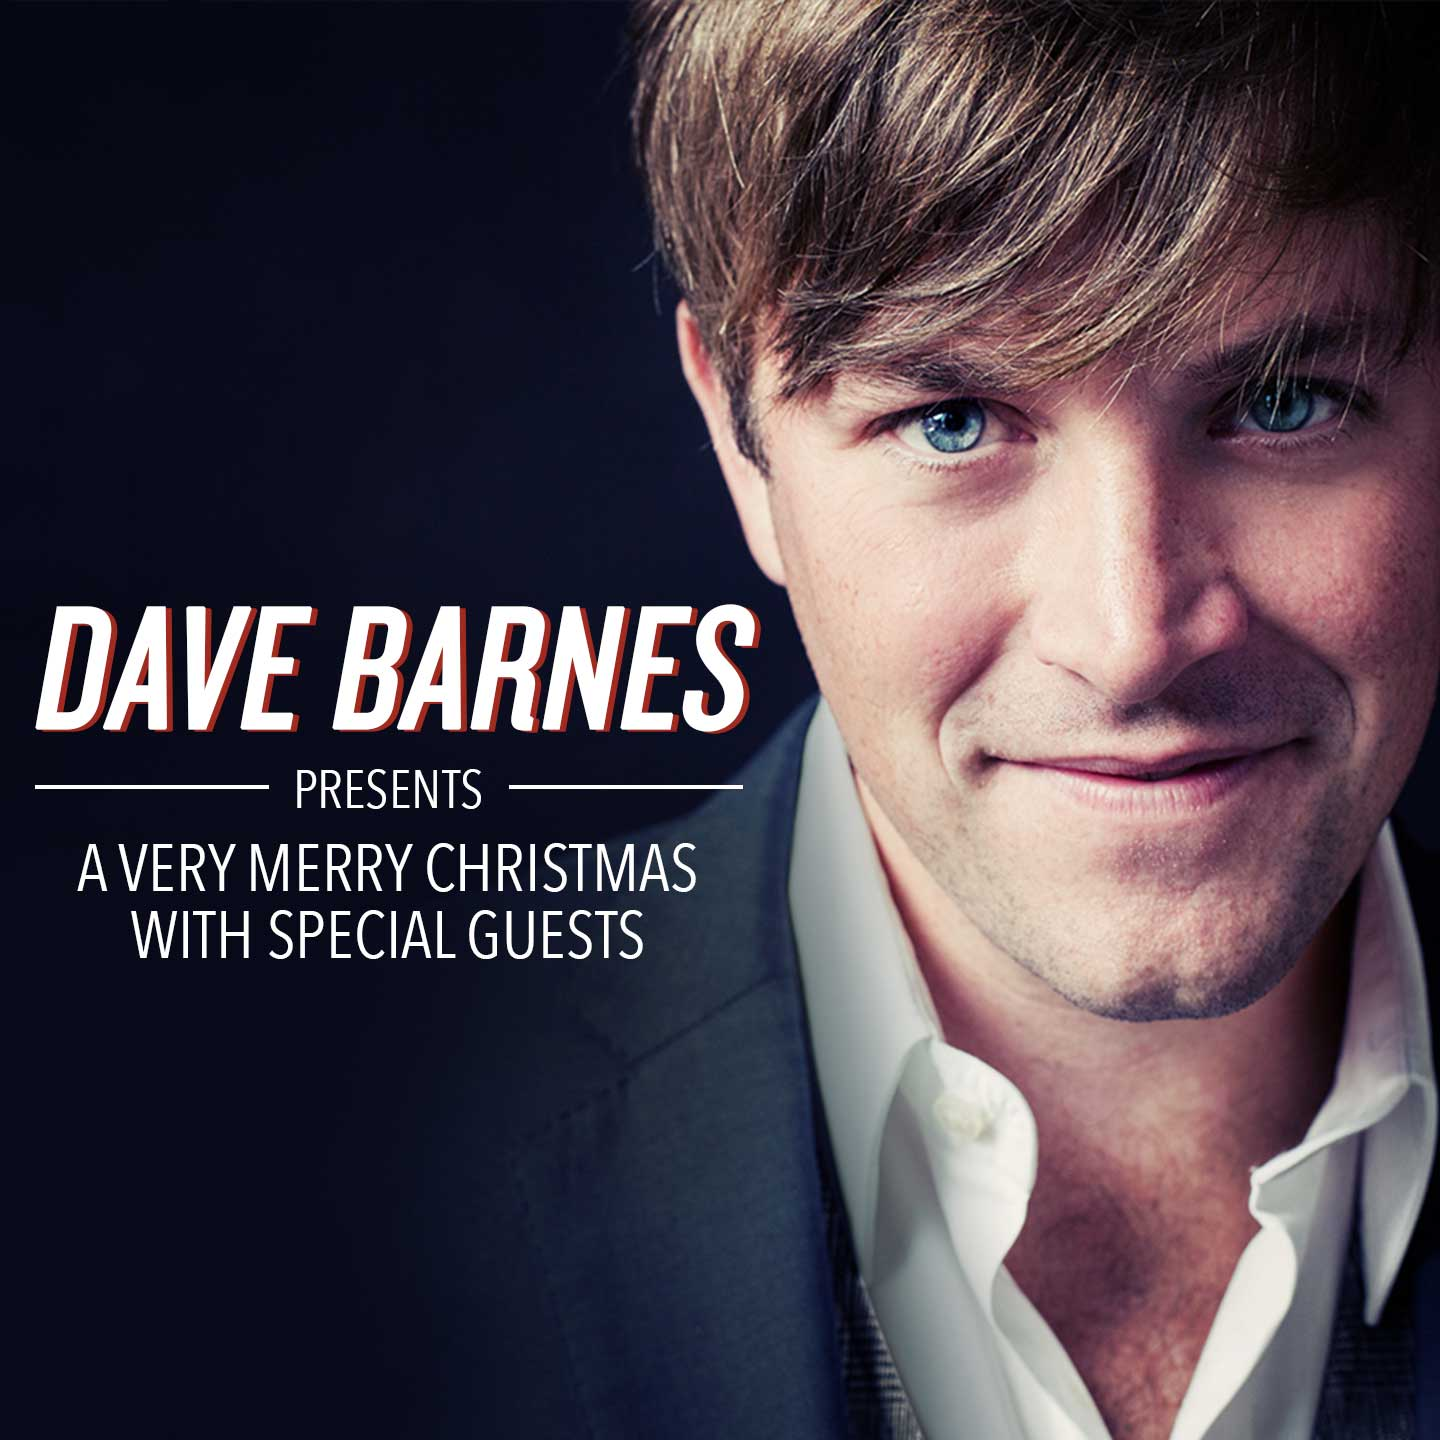 Dave Barnes Presents A Very Merry Christmas with Special Guests